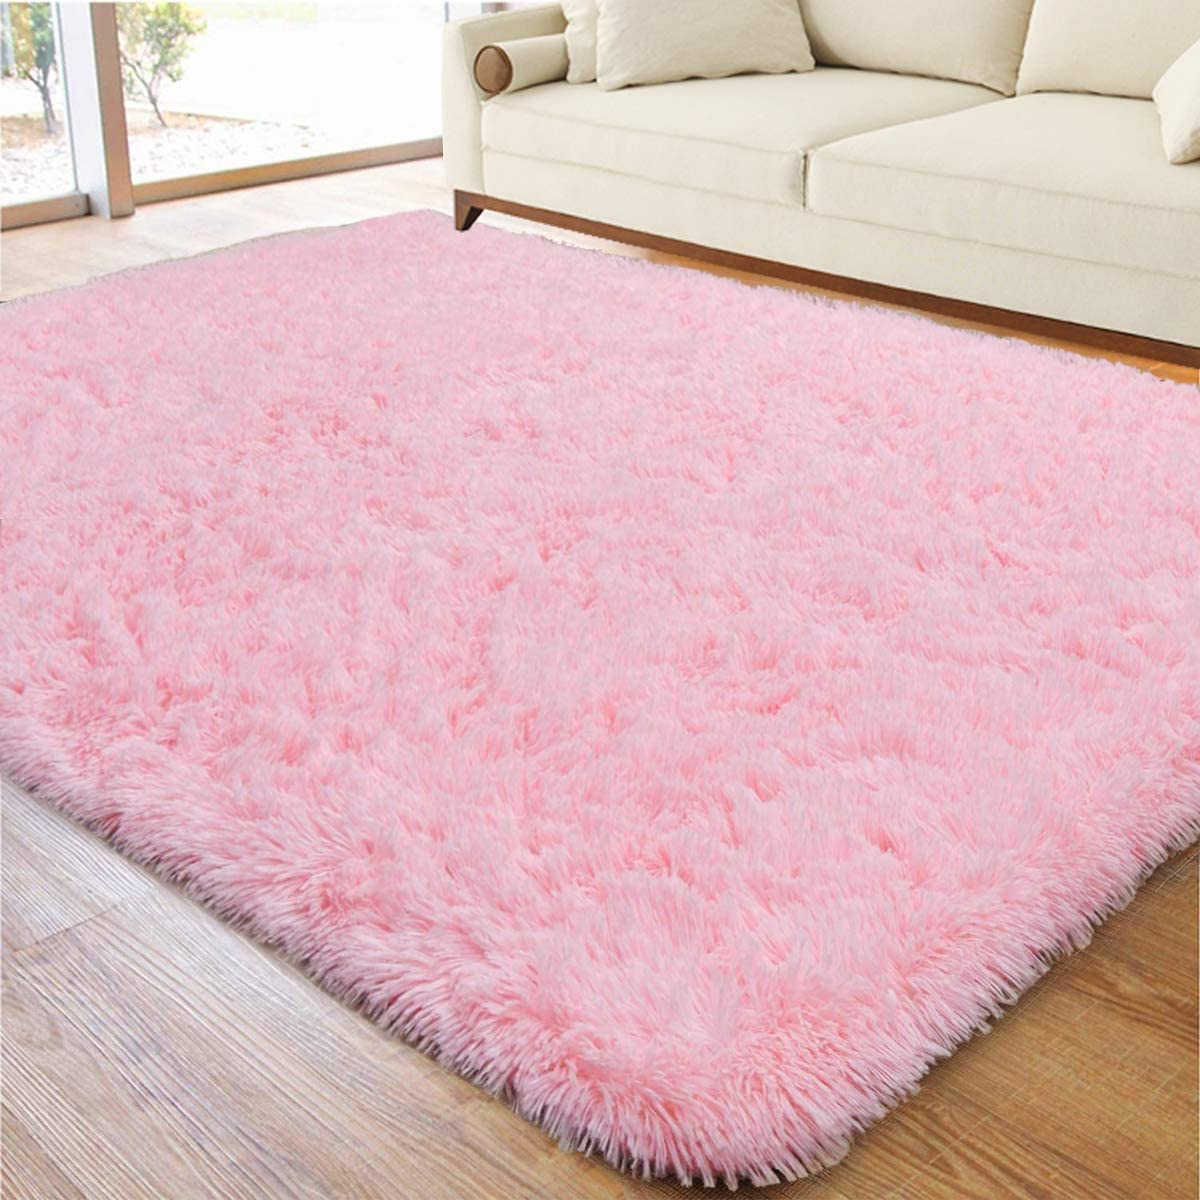 ACTCUT Ultra Soft Indoor Modern Area Room Car Fluffy Living Popular shop is Choice the lowest price challenge Rugs